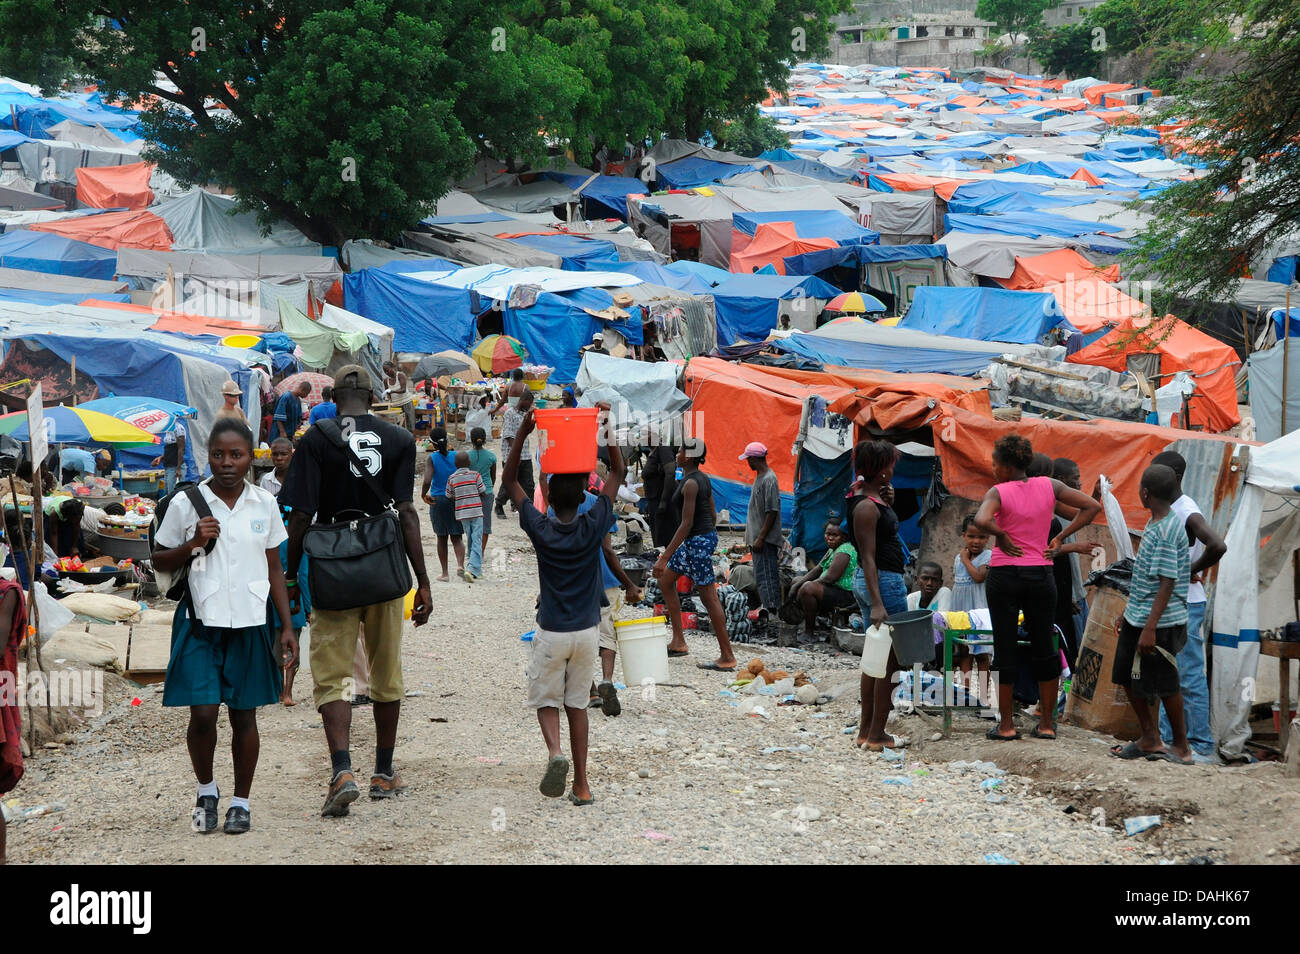 Haitians return to normalcy at the Petionville refugee camp in the aftermath of the 7.0 magnitude earthquake that - Stock Image